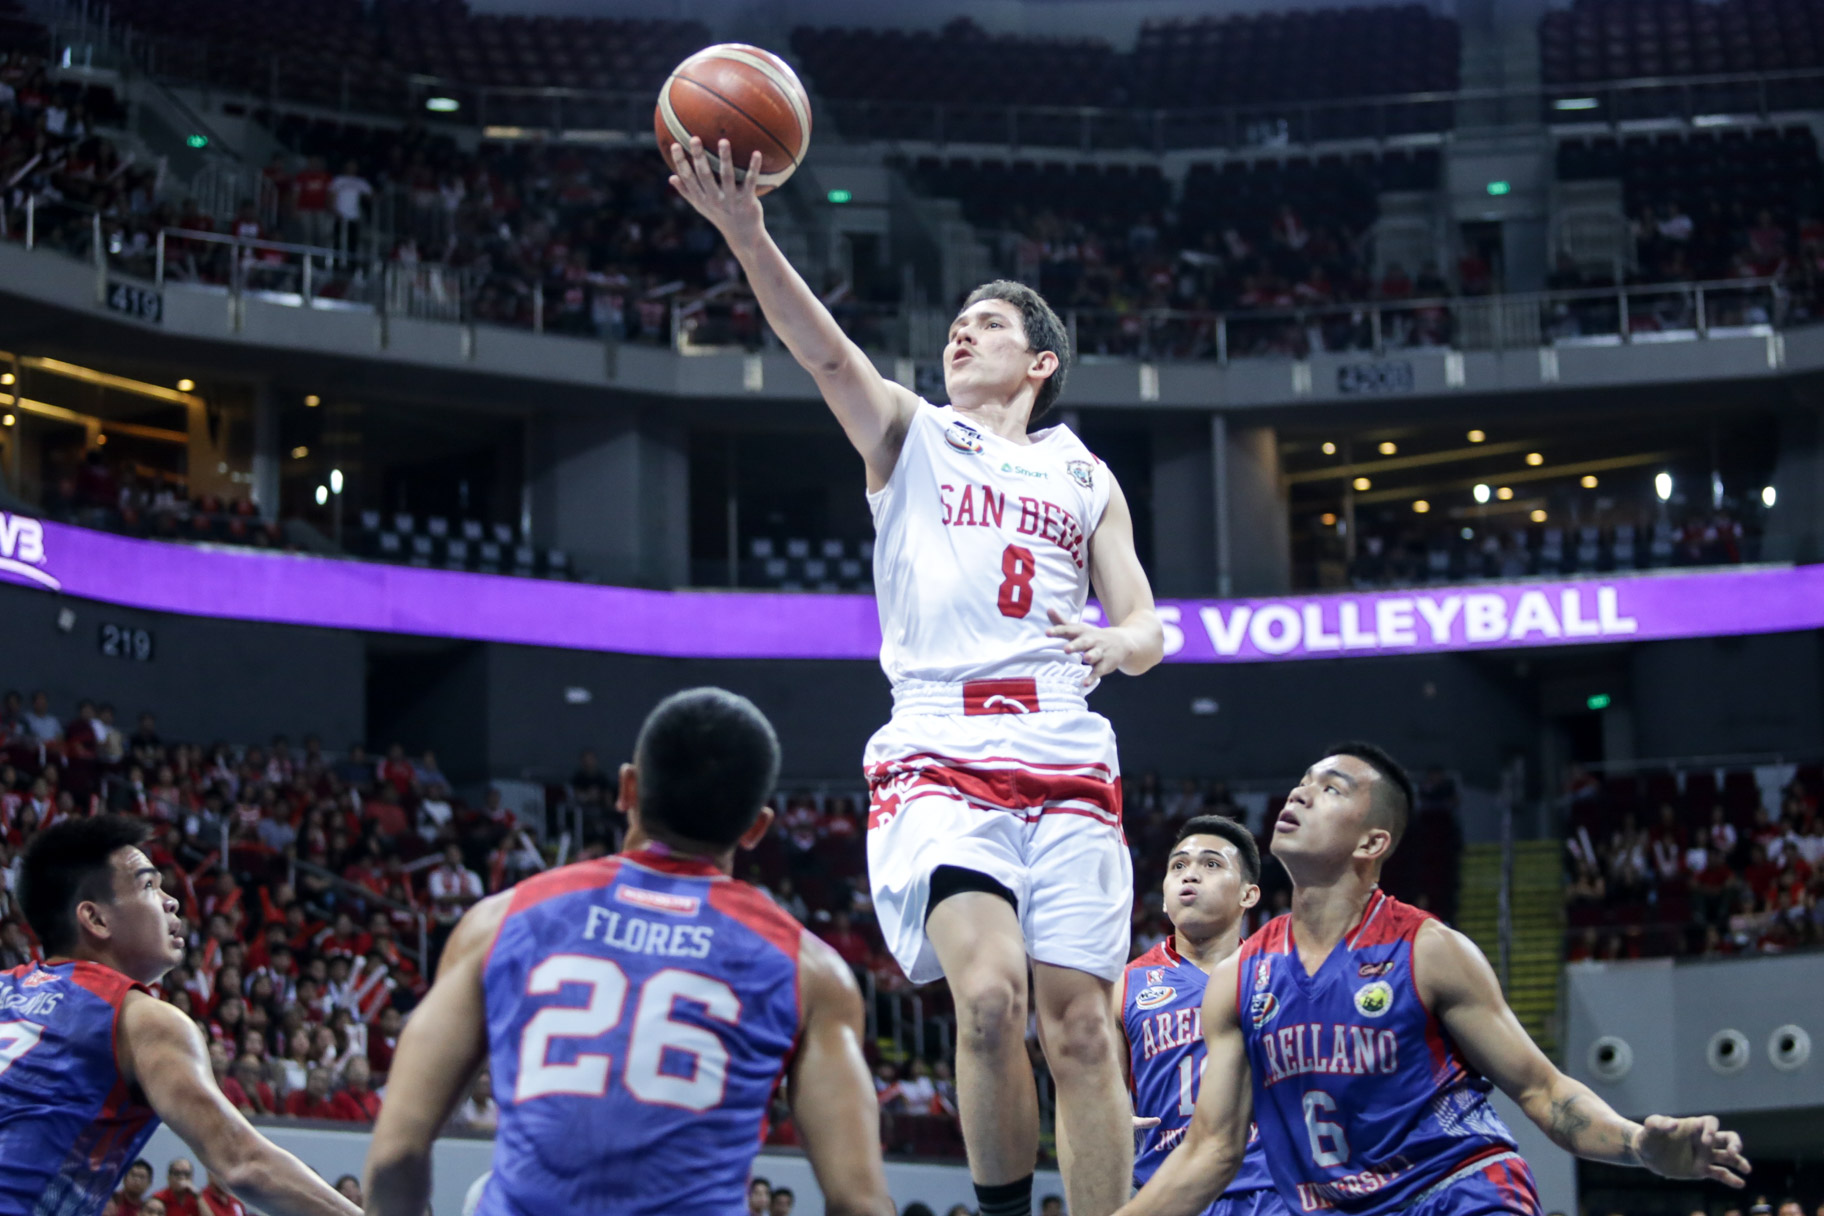 ncaa-sbc-vs-au-october-6-2016-thomas-2